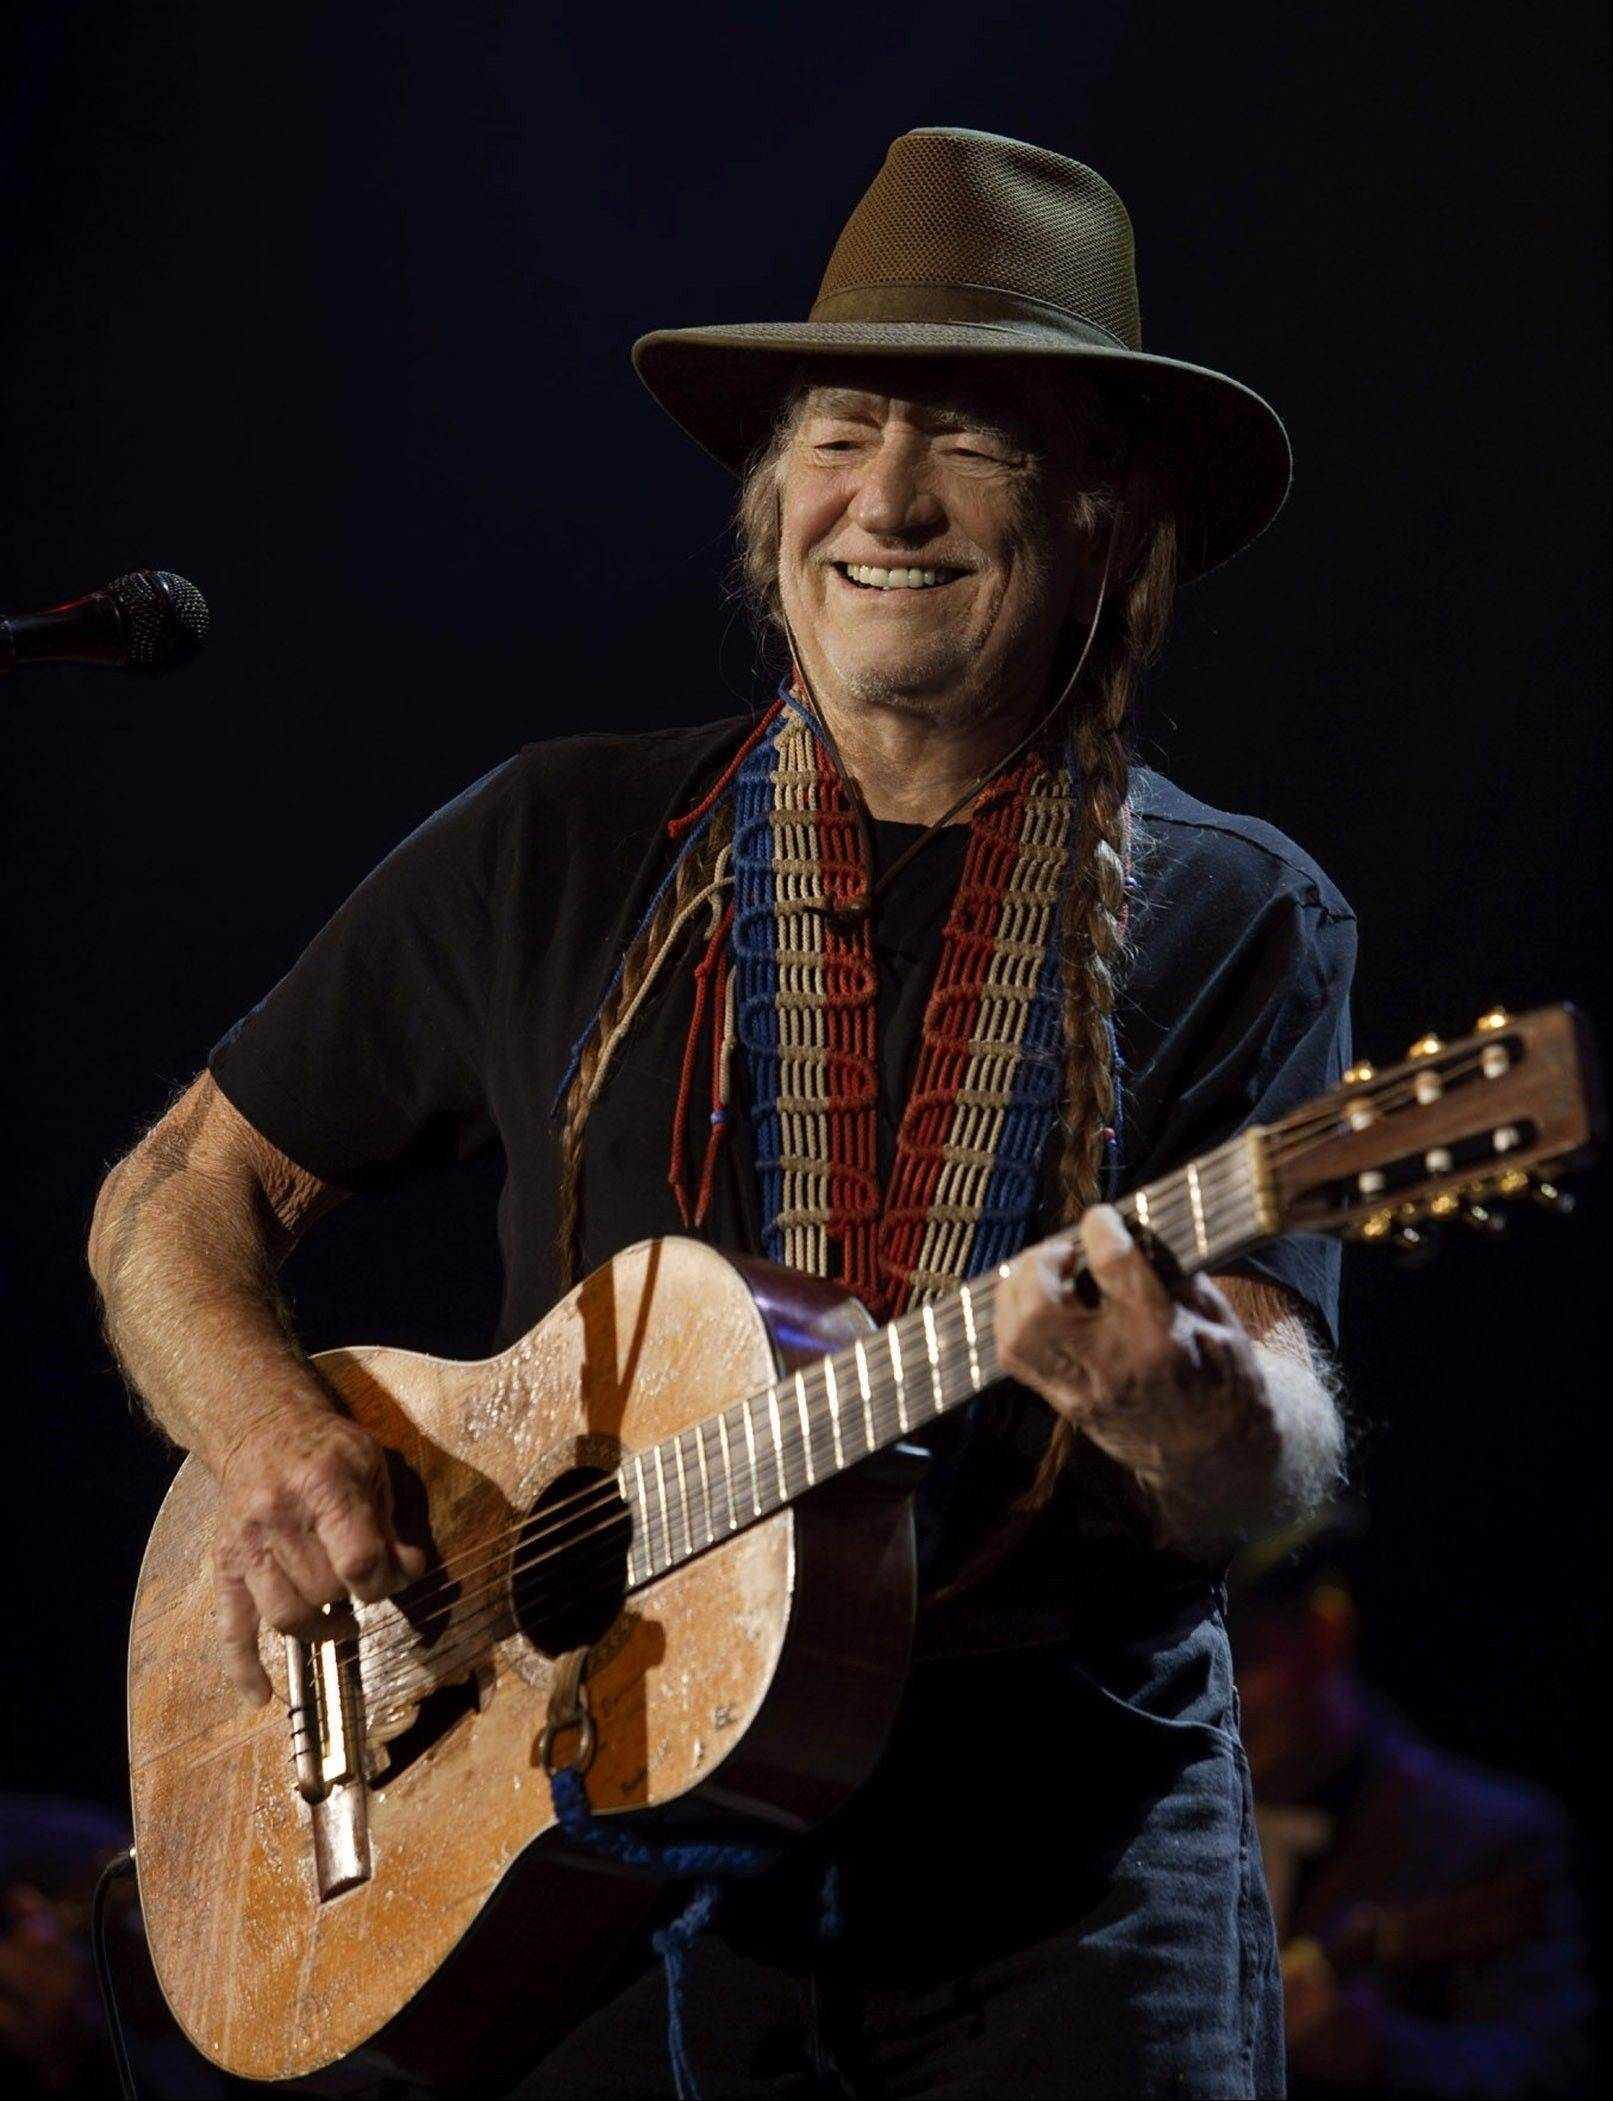 The concert Willie Nelson & Family comes to the Genesee Theatre in Waukegan.